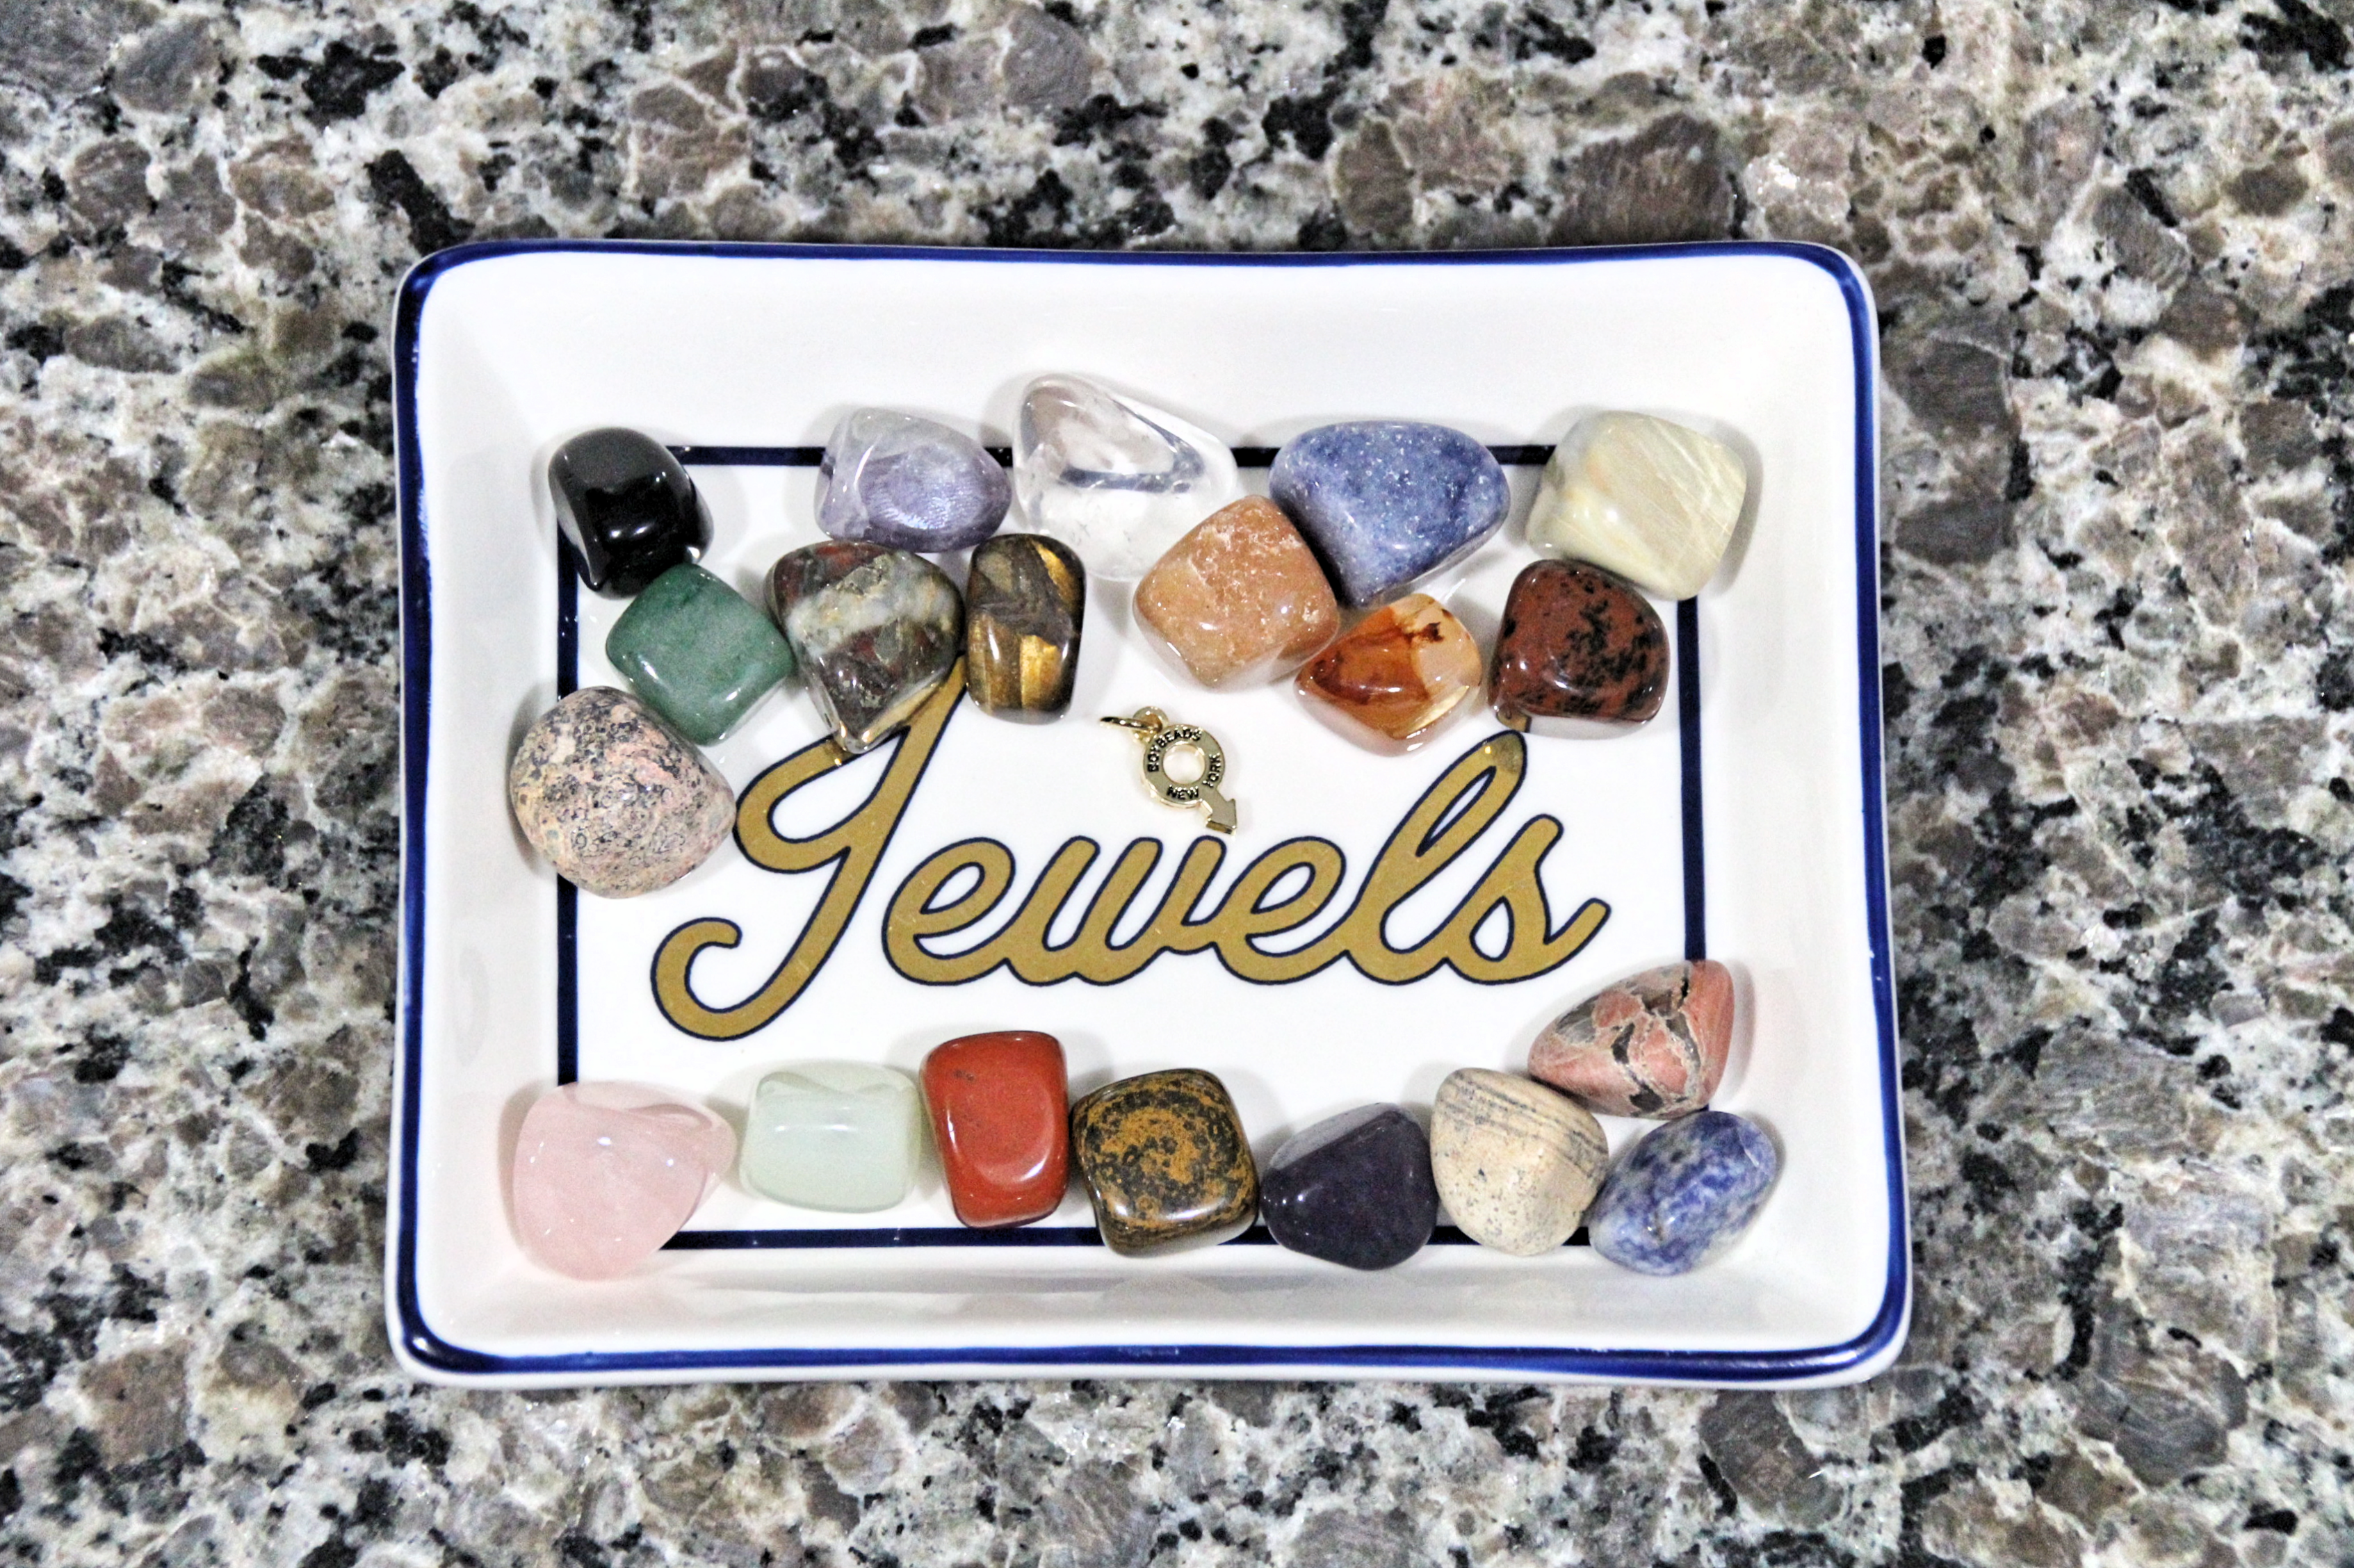 boybeads-natural-semi-precious-tumbled-stones-meditation-prayer-hot-stone-chakra-balancing-boybeads-new-york-stones-on-tray.png